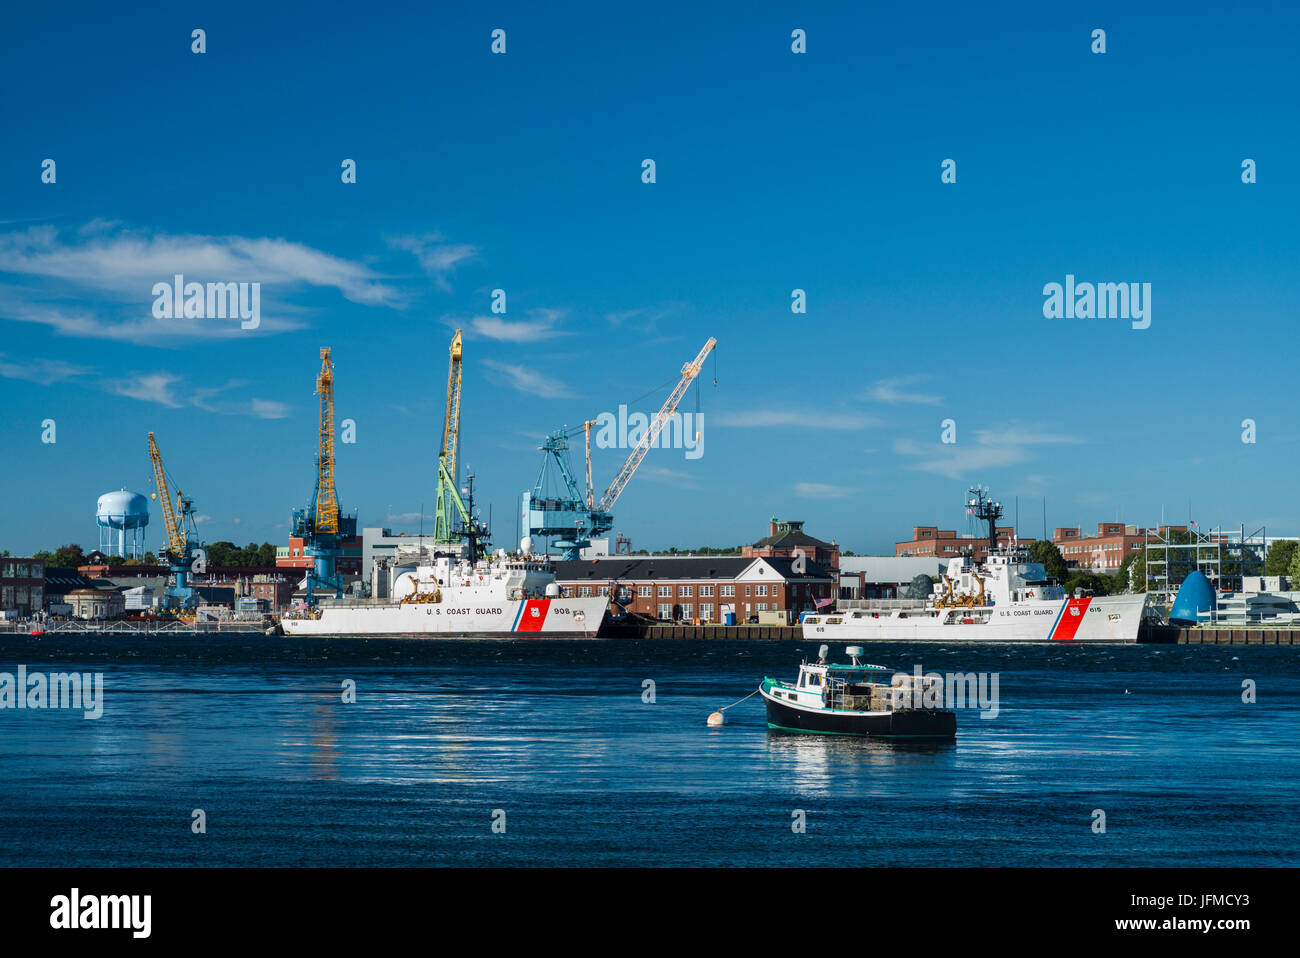 USA, New Hampshire, Portsmouth, view of the Portsmouth Naval Shipyard along the Piscataqua River - Stock Image